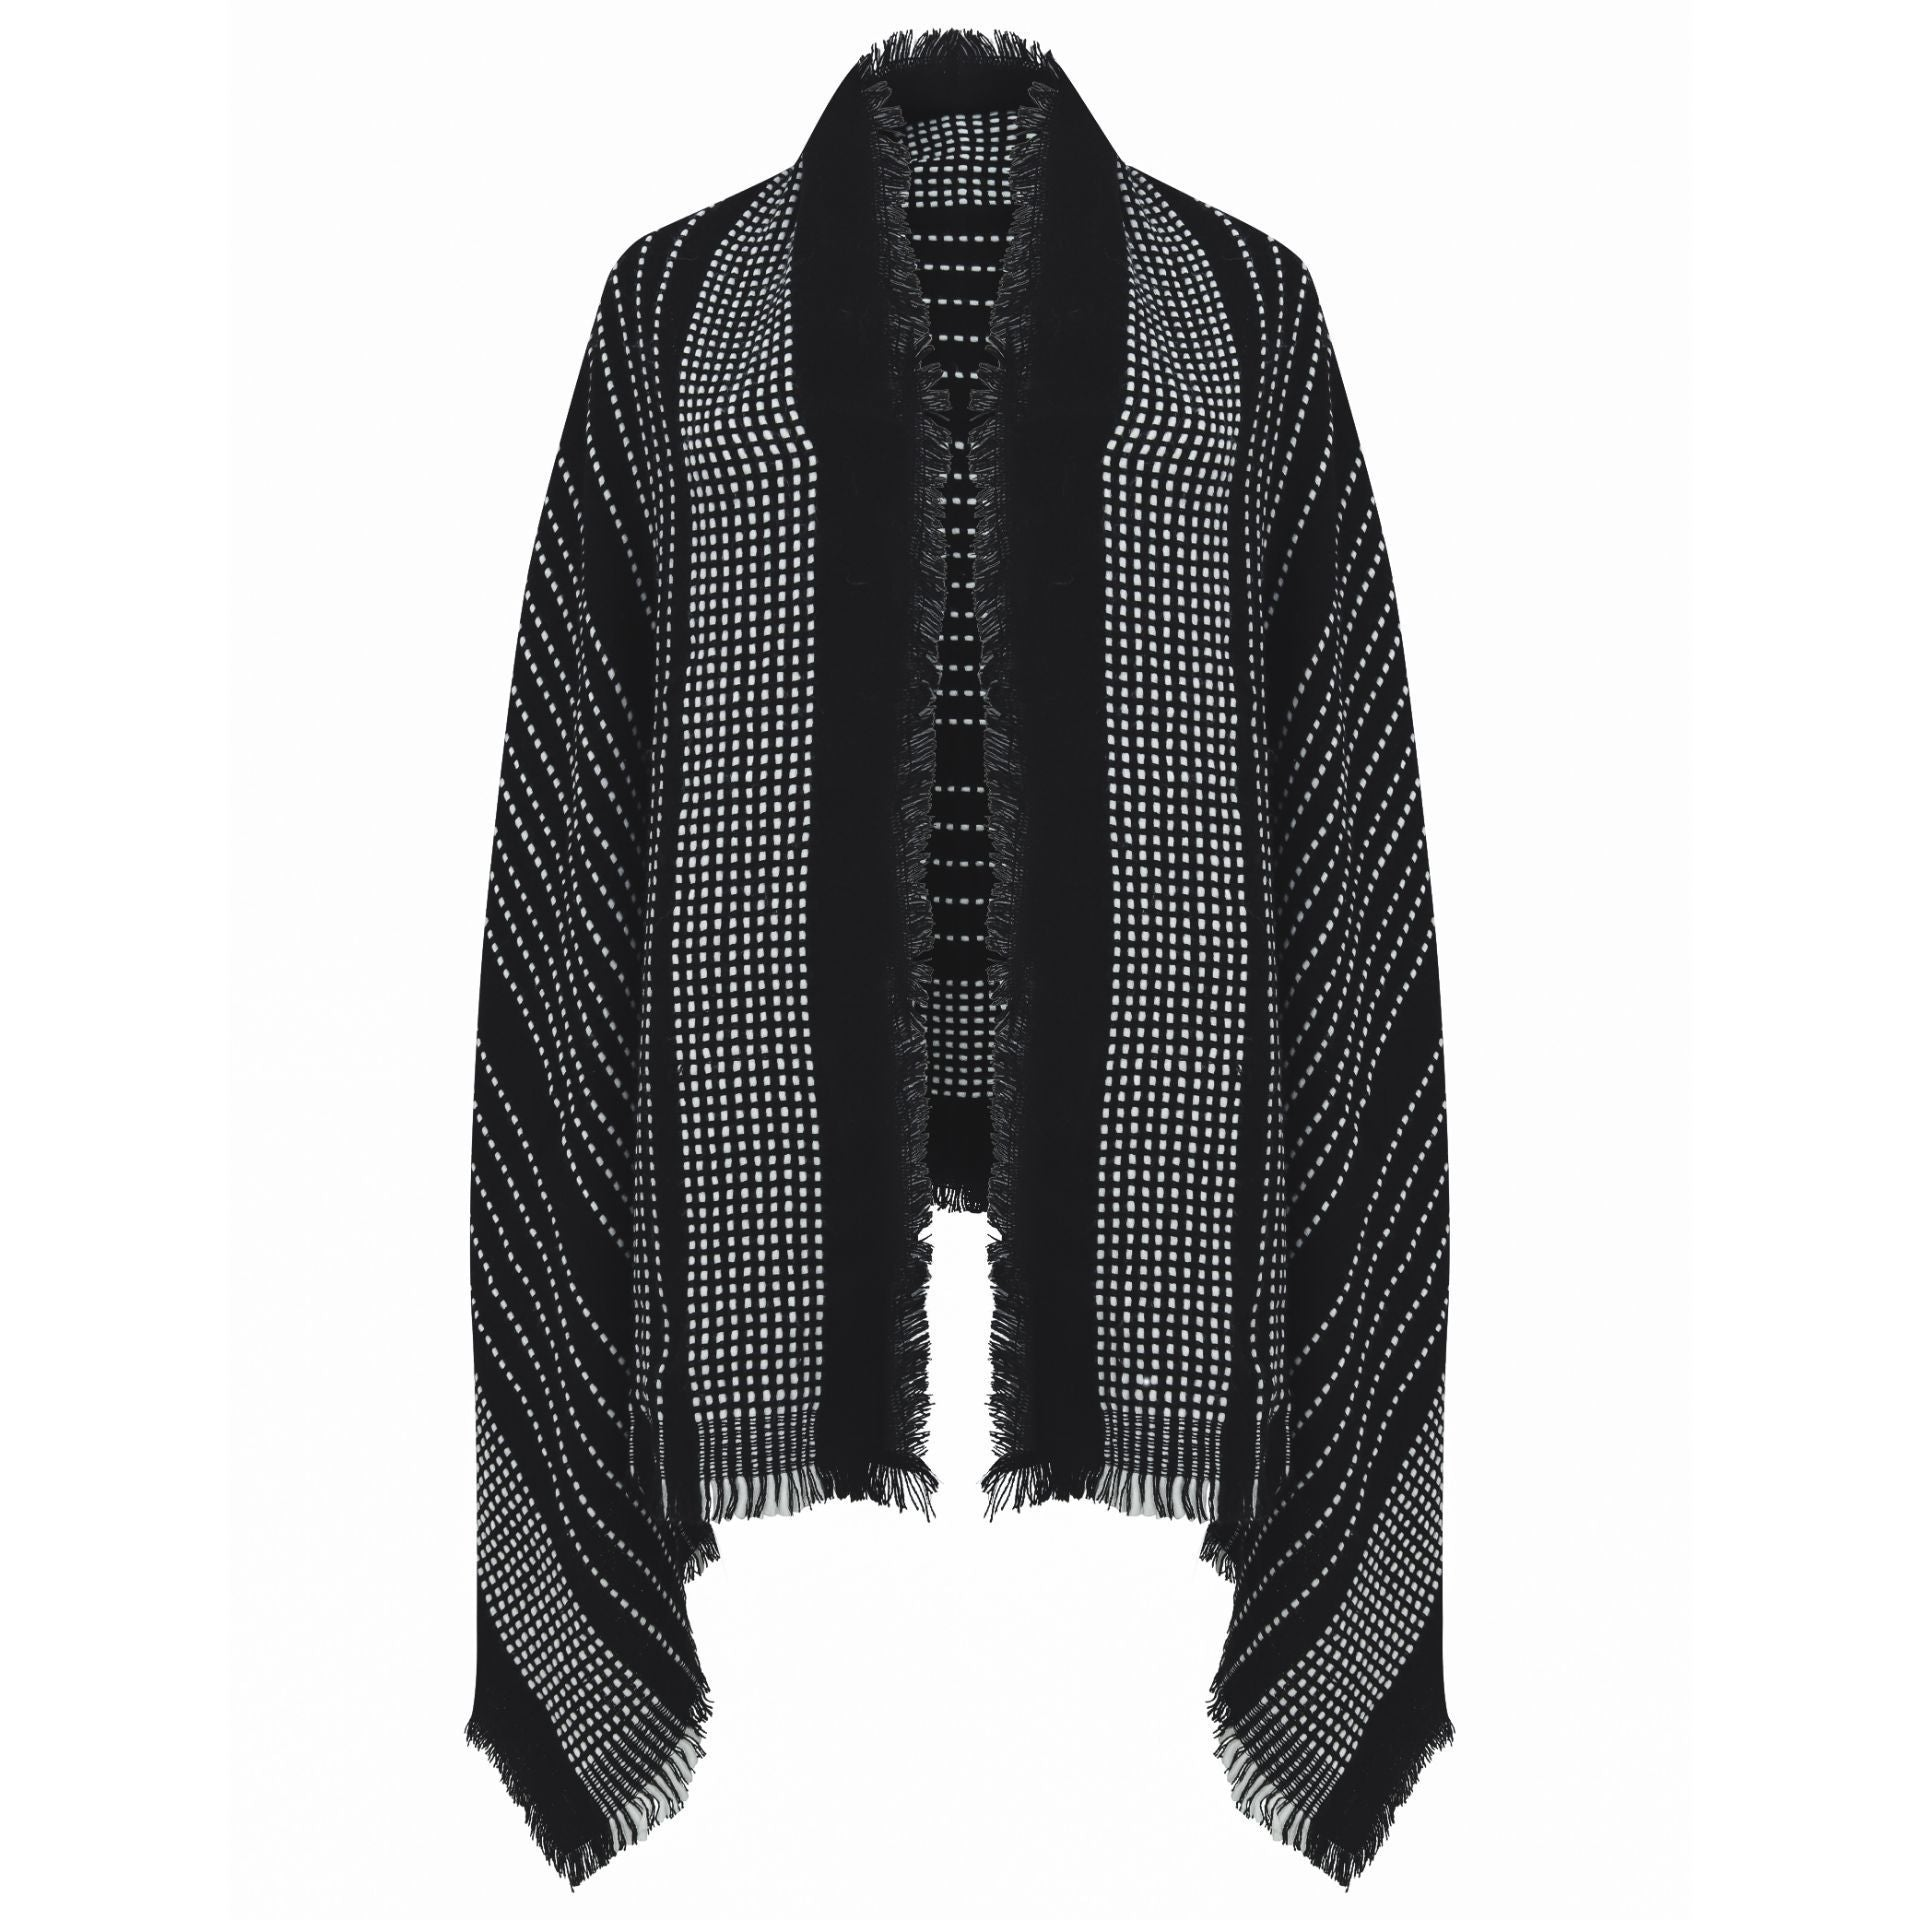 East Village Jordan Georgia Scarf - black